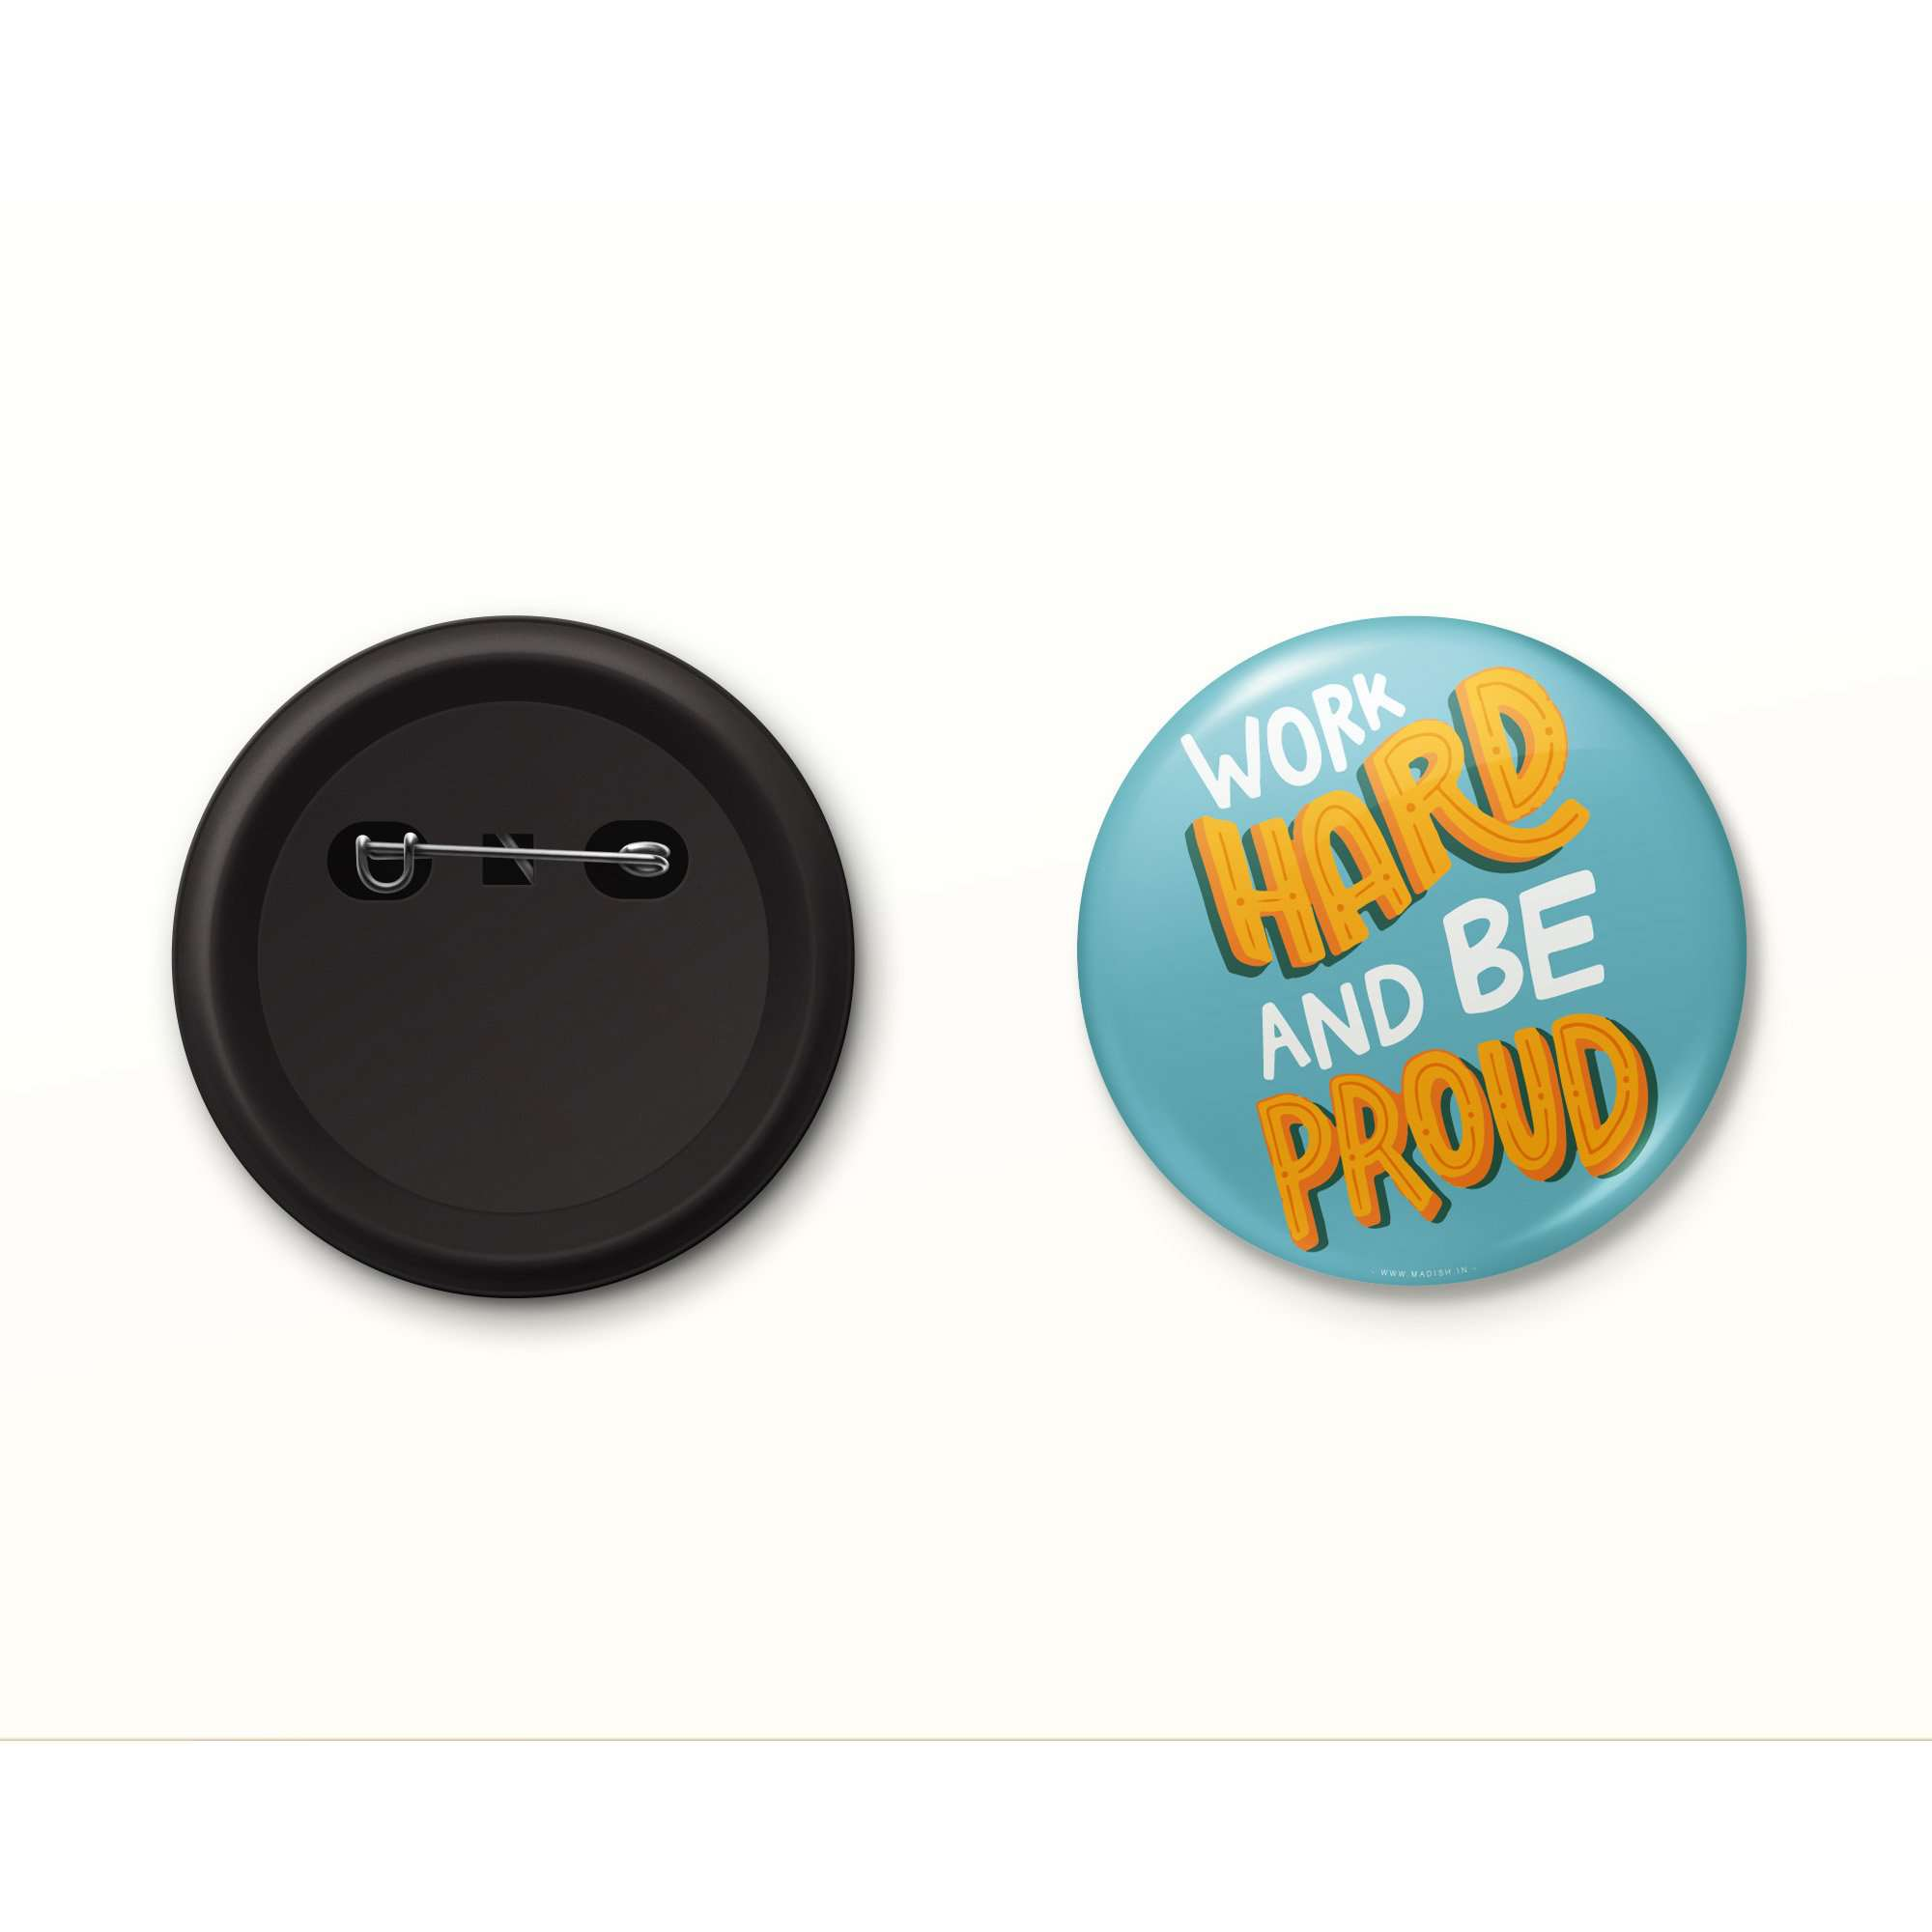 Work Hard and Be Proud Button Badge Accessories Madish